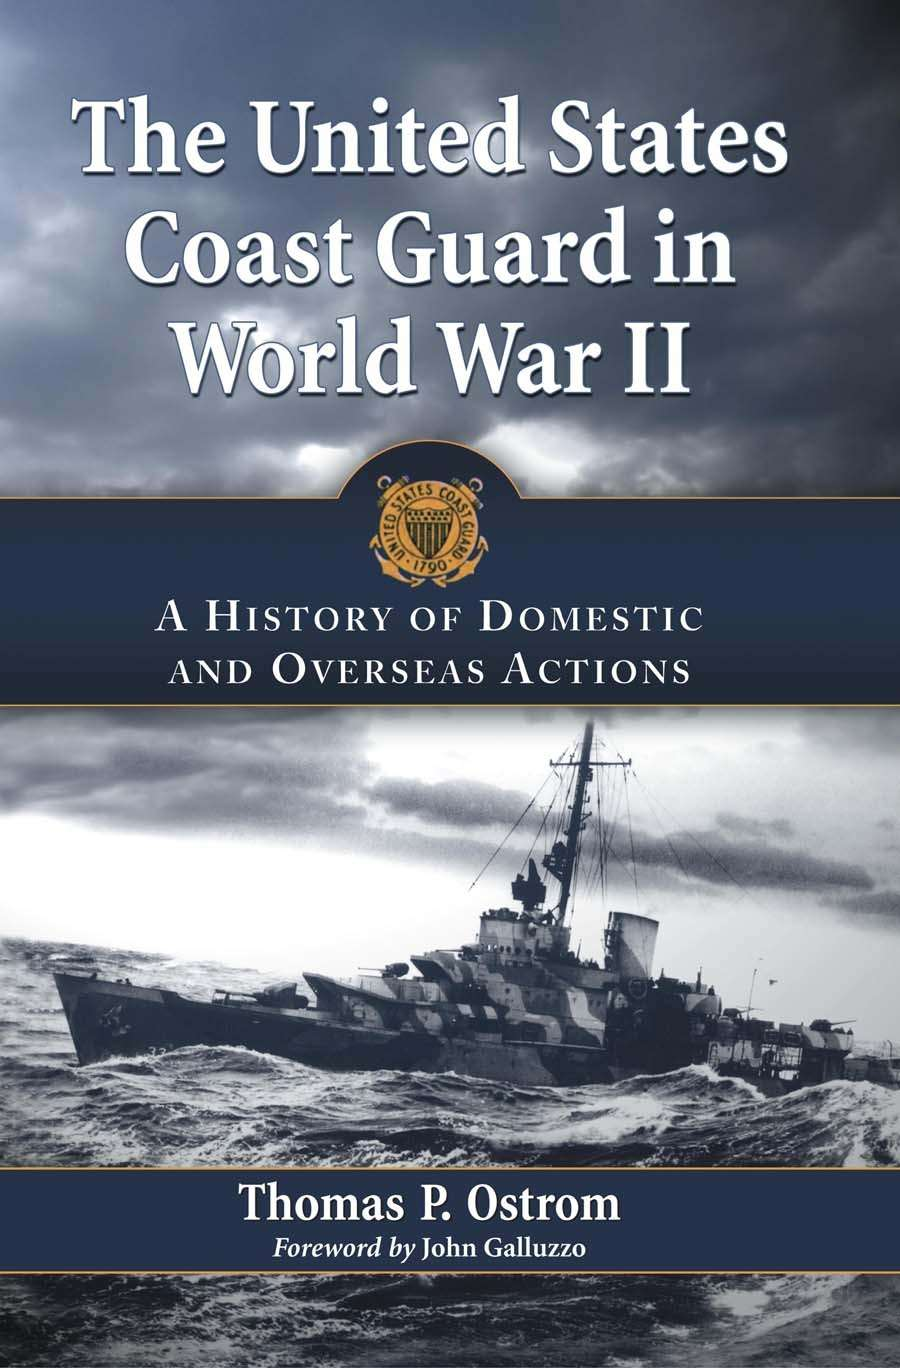 Home Security Ratings >> The United States Coast Guard in World War II - McFarland ...